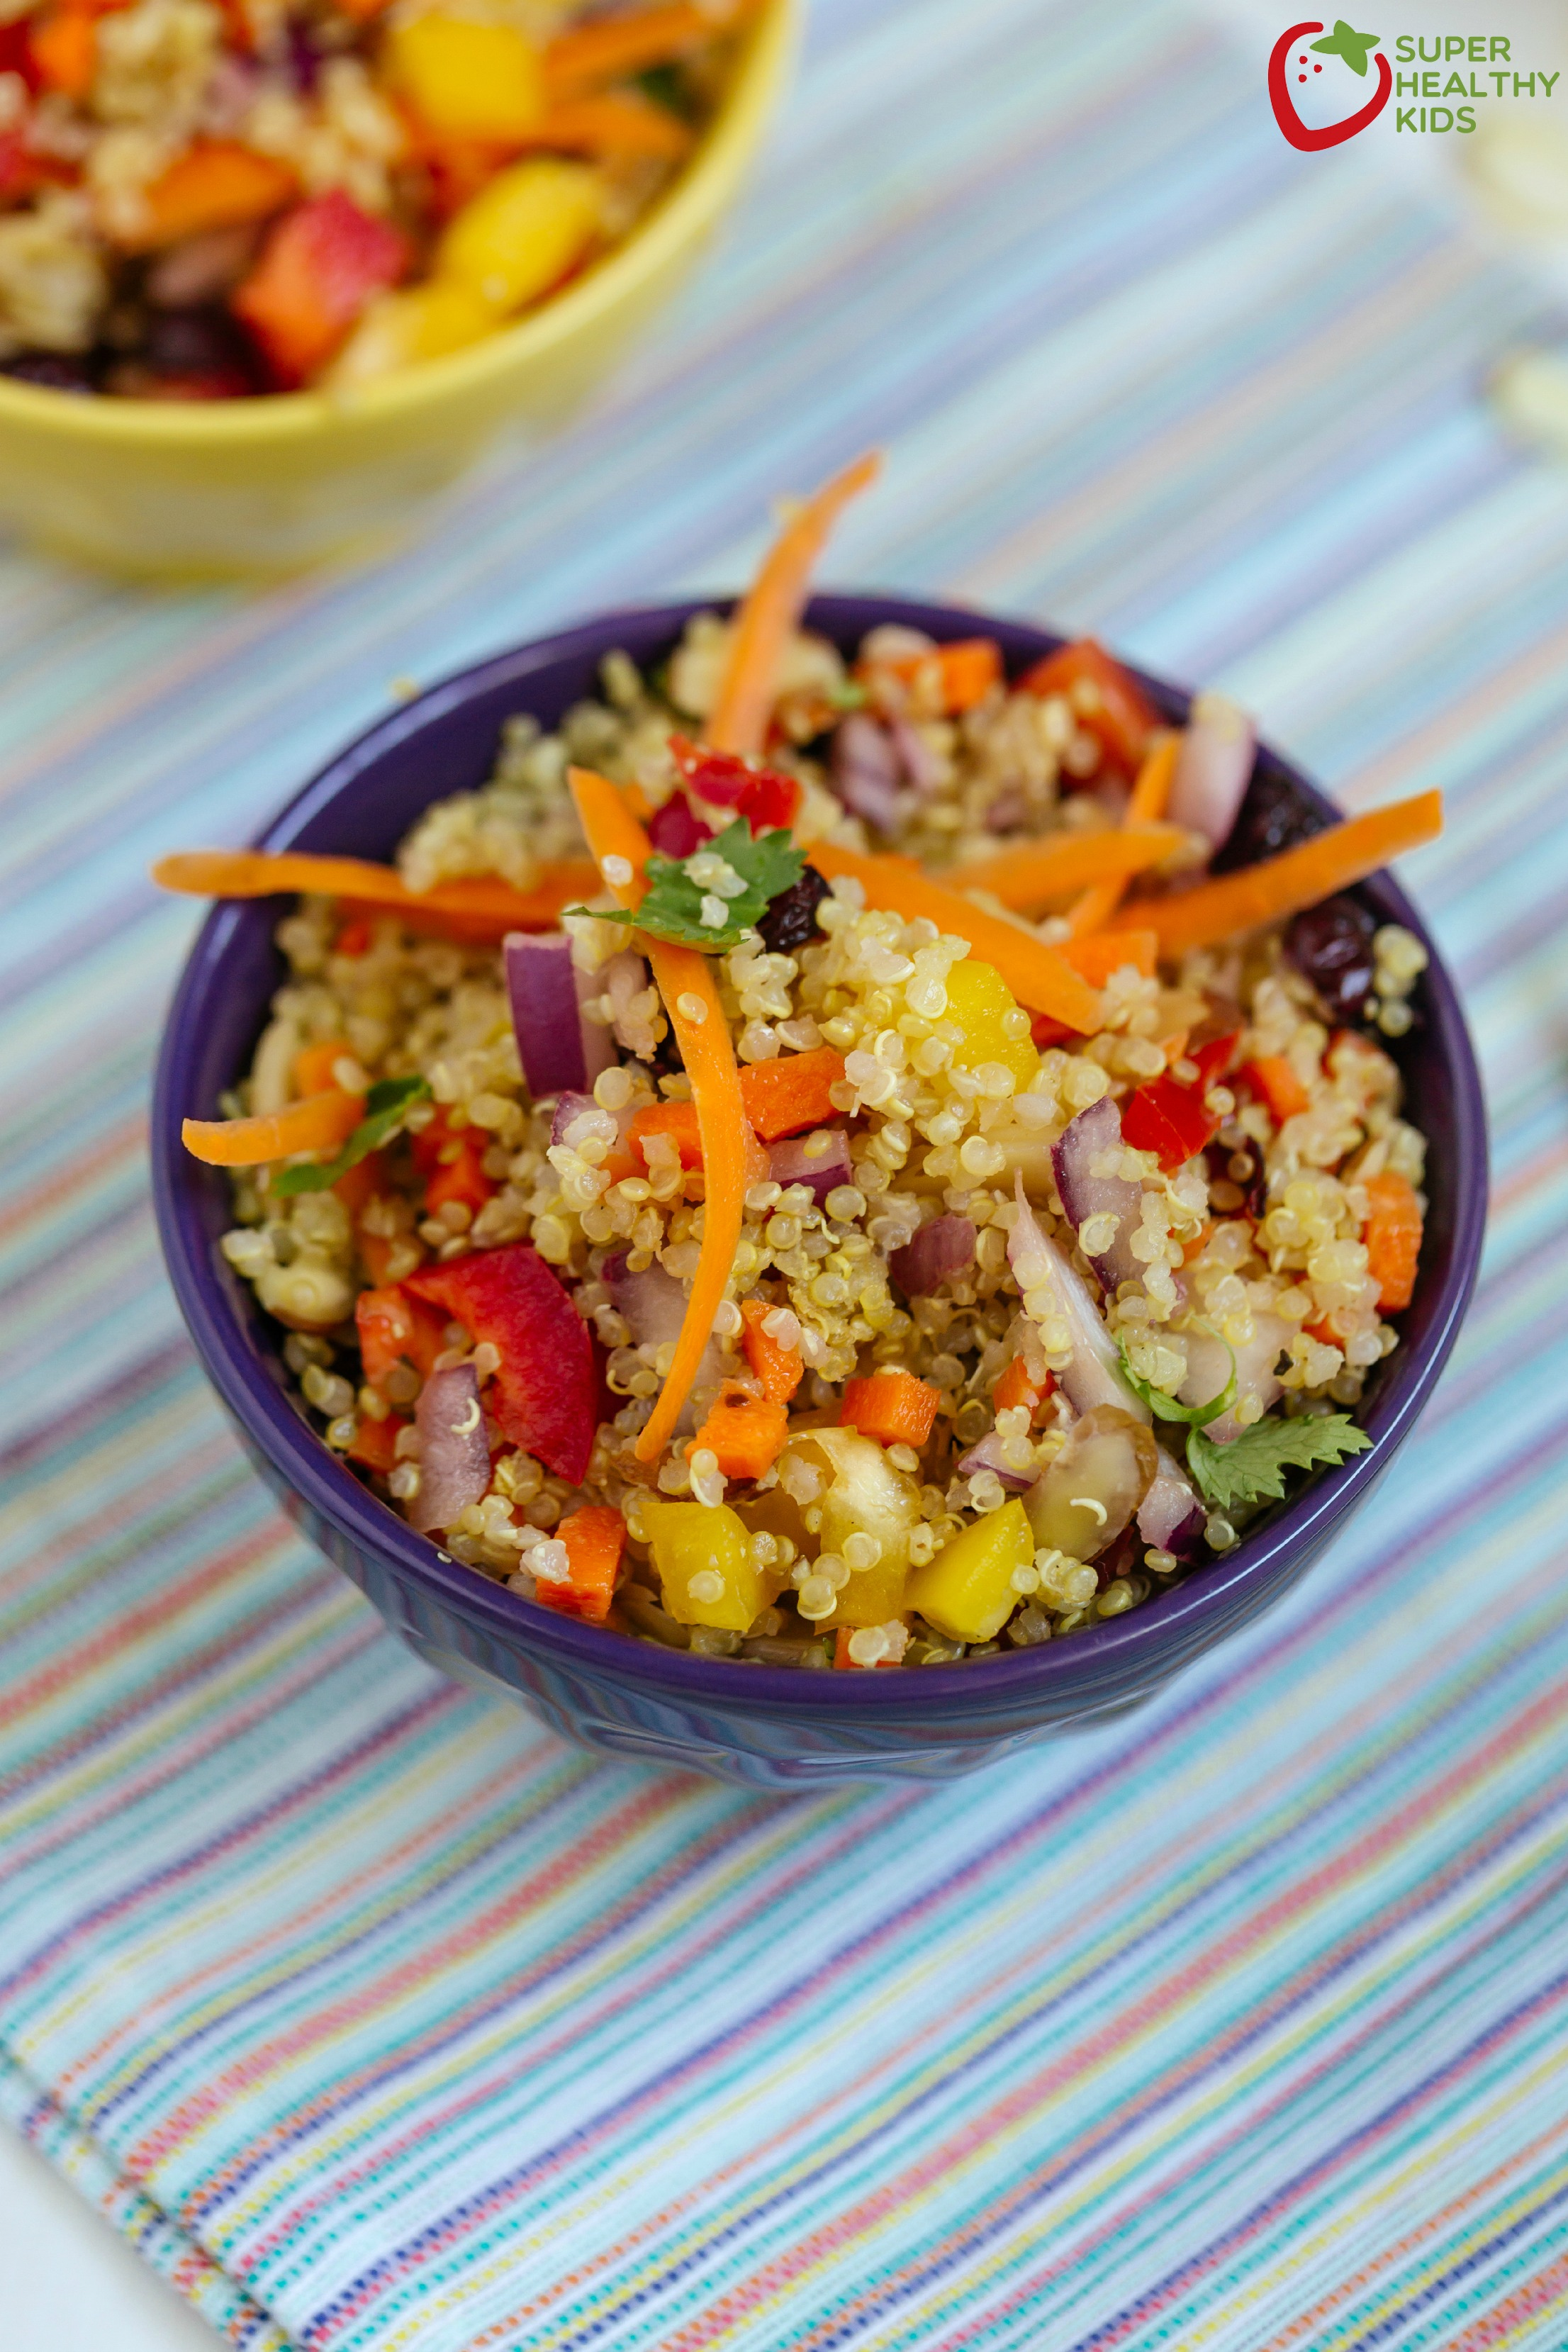 Summer quinoa salad recipe healthy ideas for kids summer quinoa salad fresh packed with nutrition and can be a main dish or sisterspd